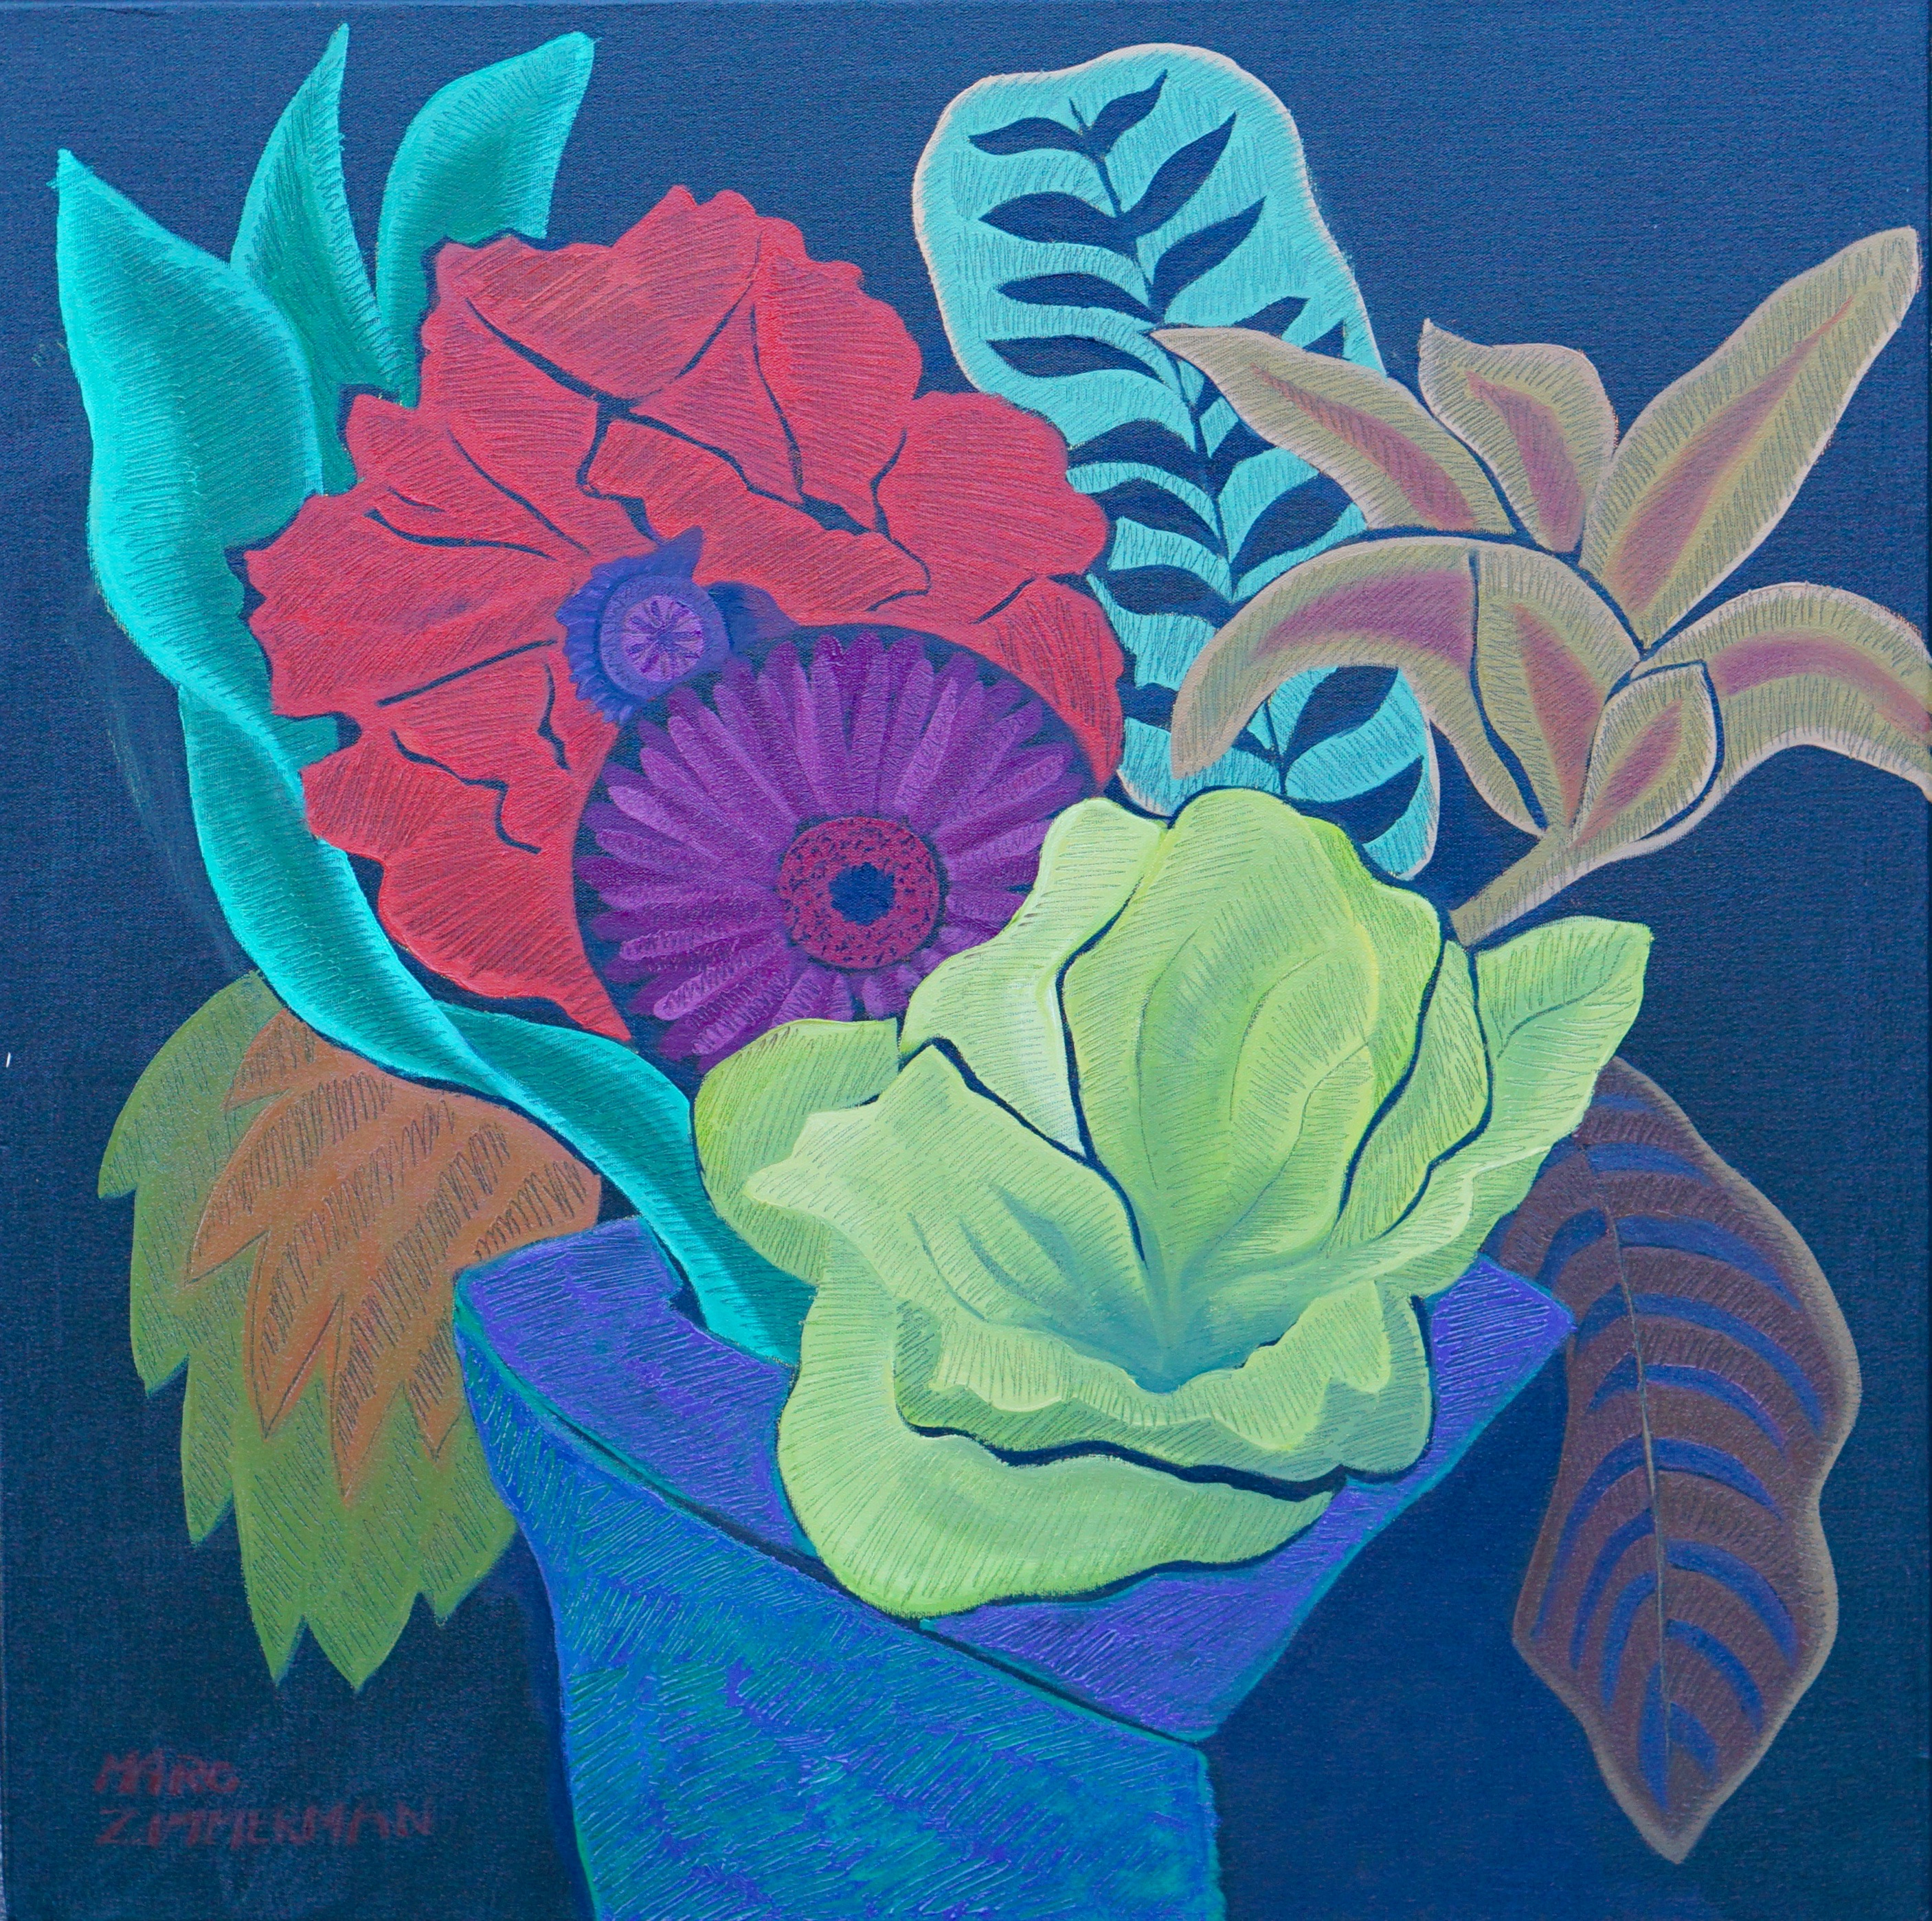 Tropical Fantasy 1 artwork by Marc Zimmerman - art listed for sale on Artplode